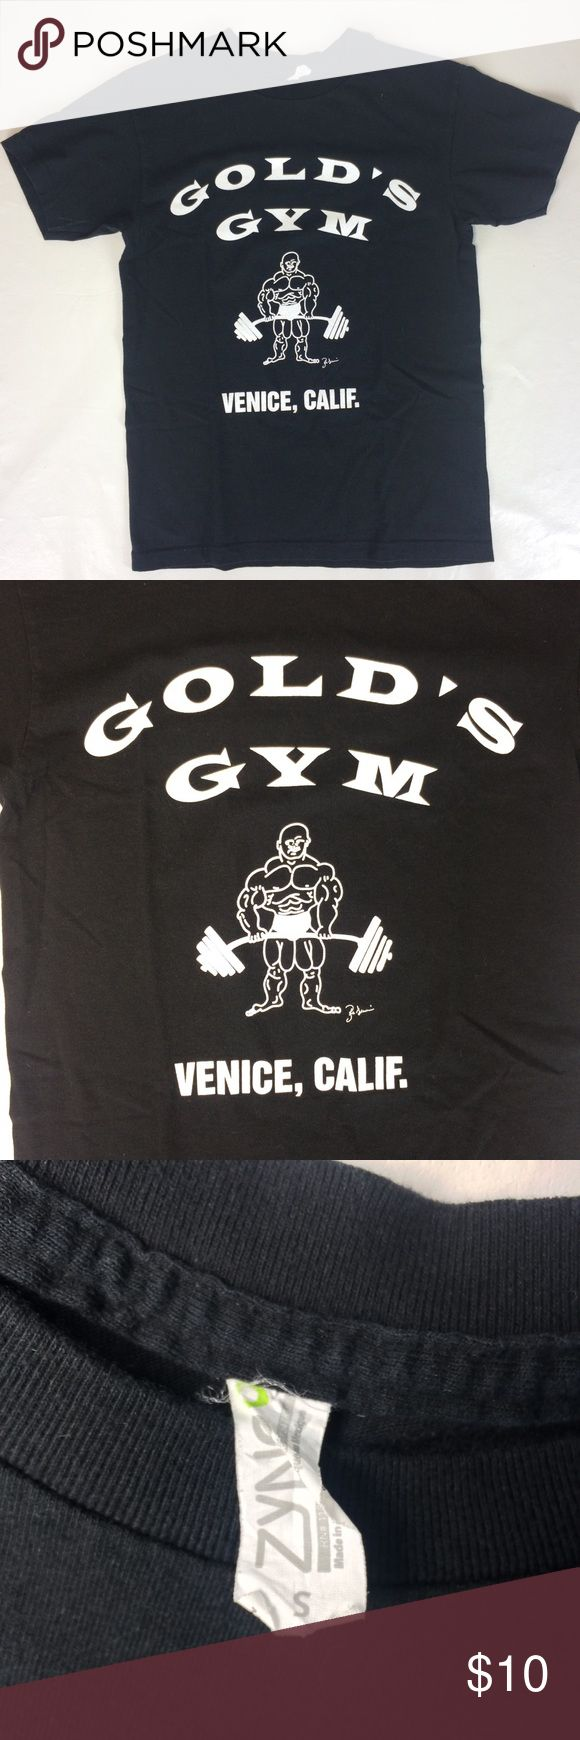 Gold Gym Mens Small Gym Workout T-Shirt Black Golds Gym shirt in great shape! Shirts Tees - Short Sleeve